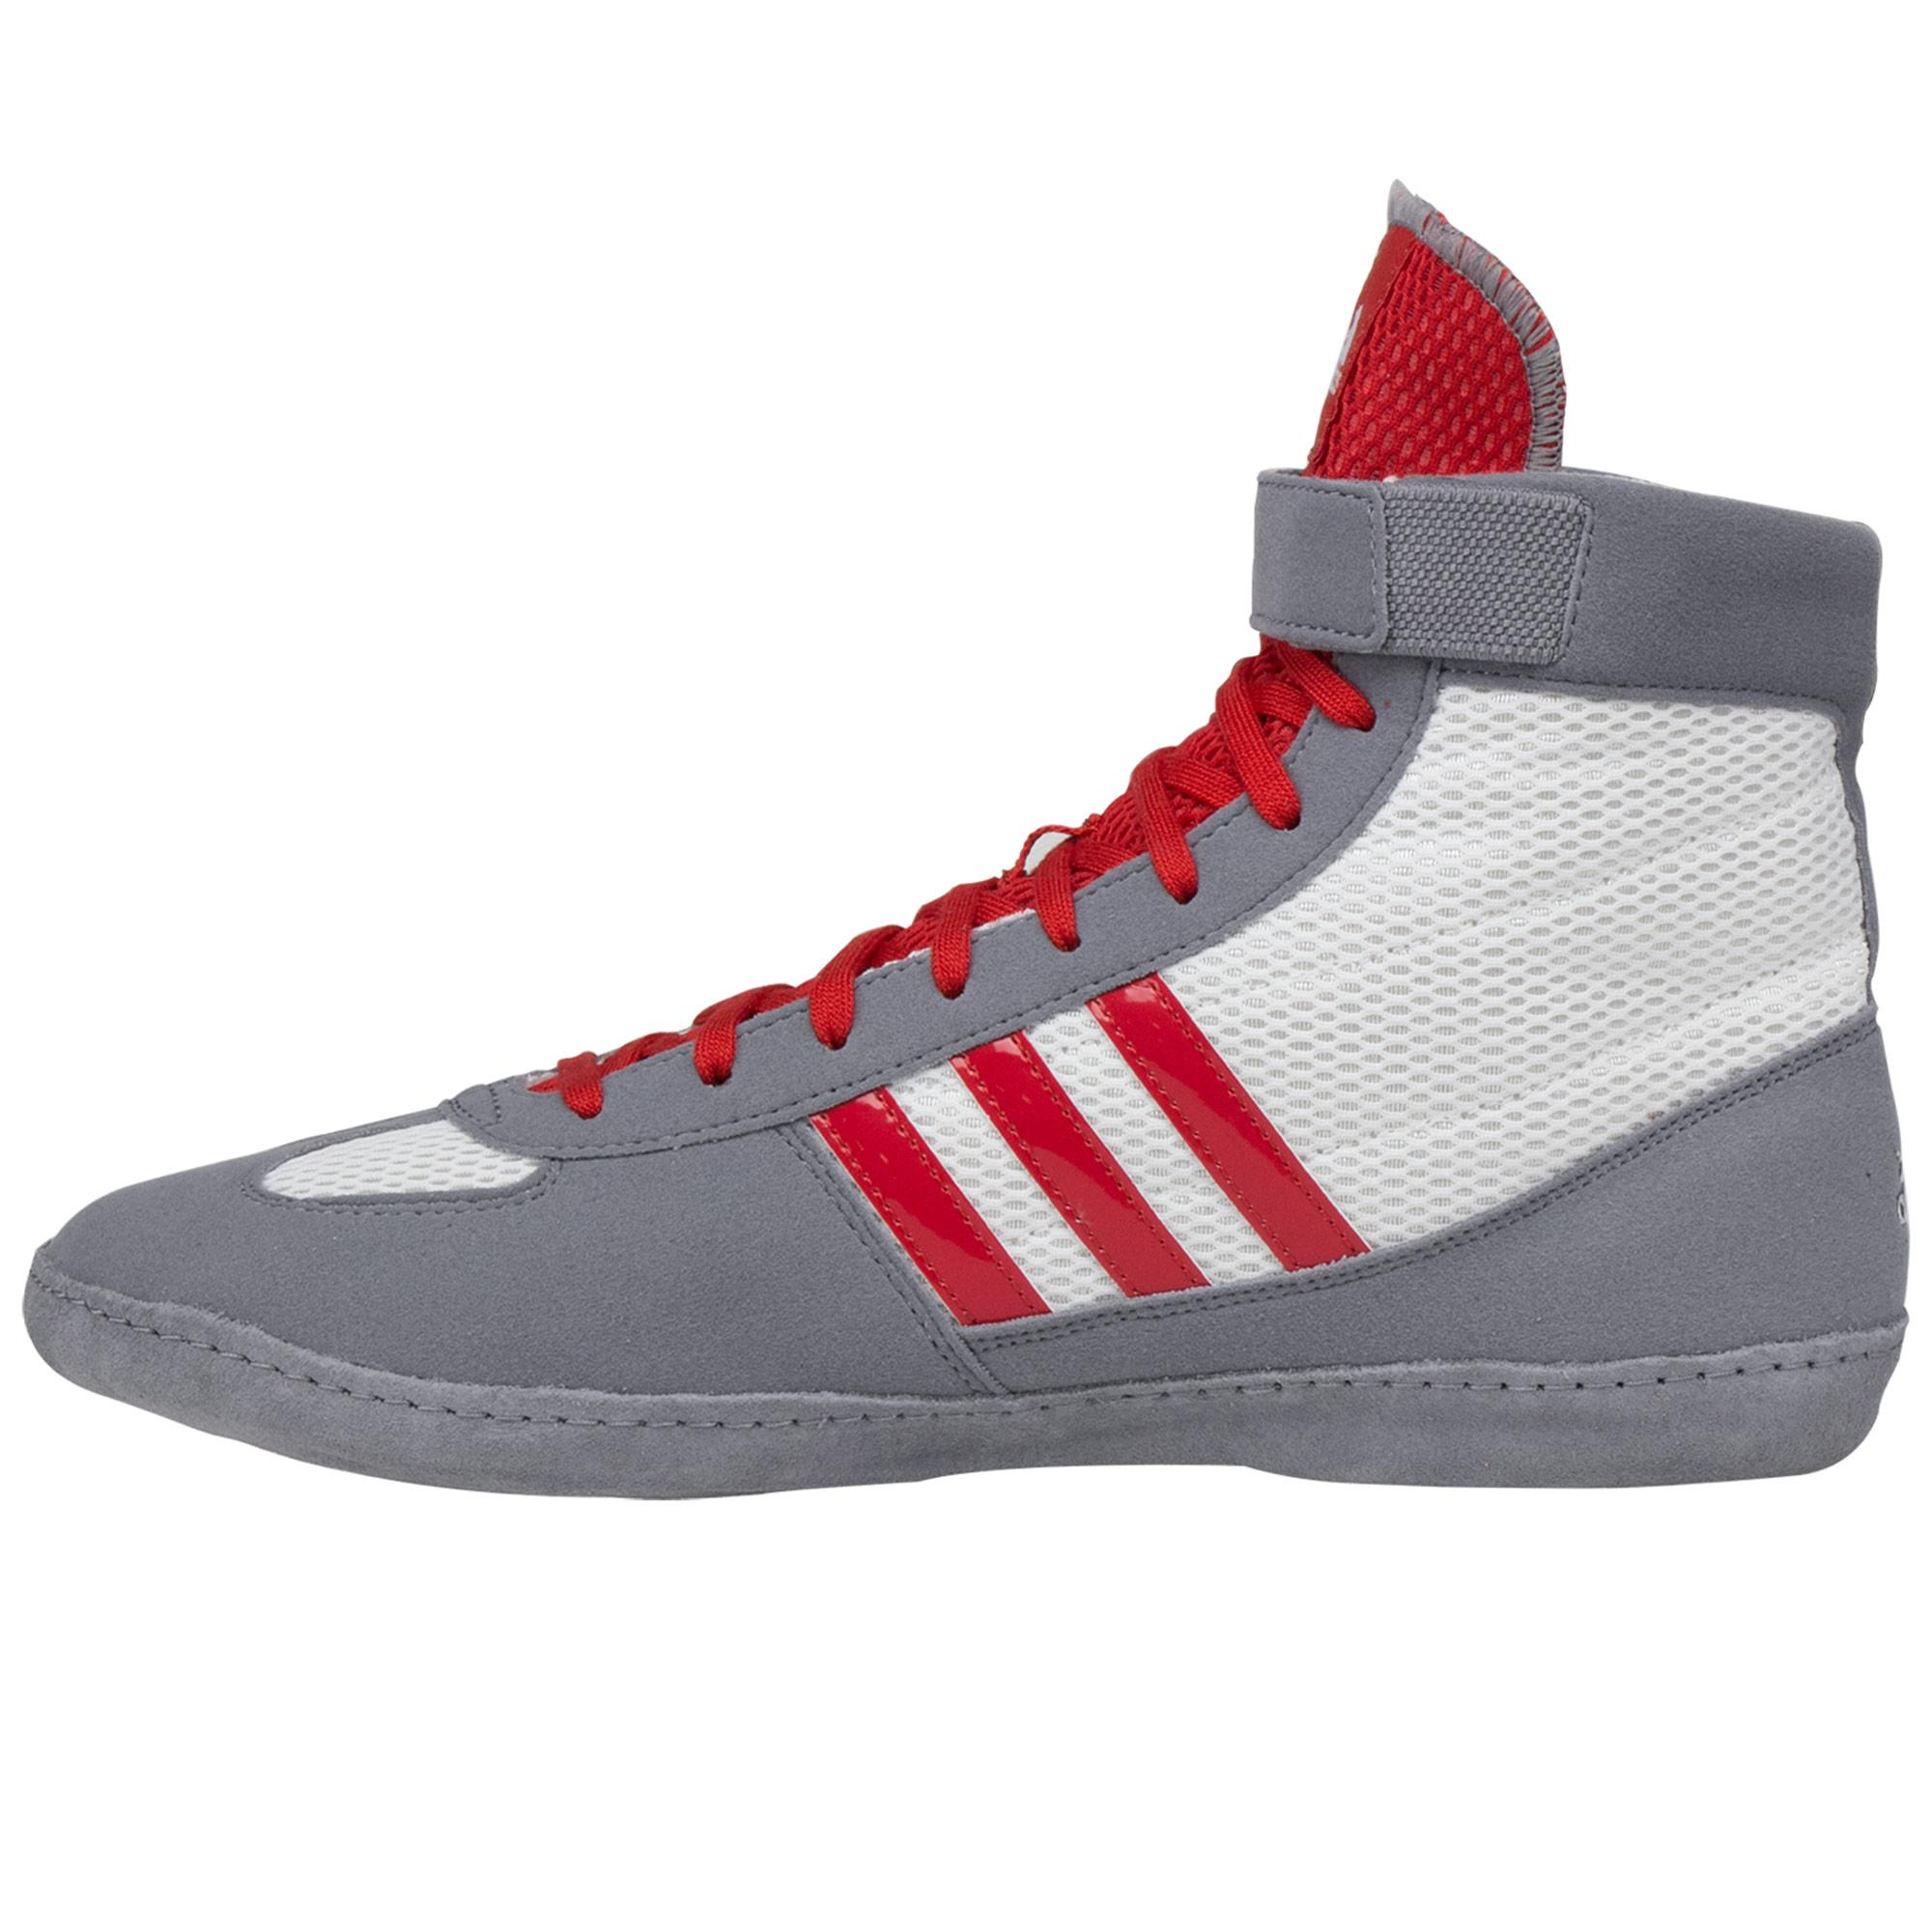 Combat Speed 4 Grey White Red frontAdidas Combat Speed 4 Grey White Red backAdidas Combat Speed 4 Grey White Red sole